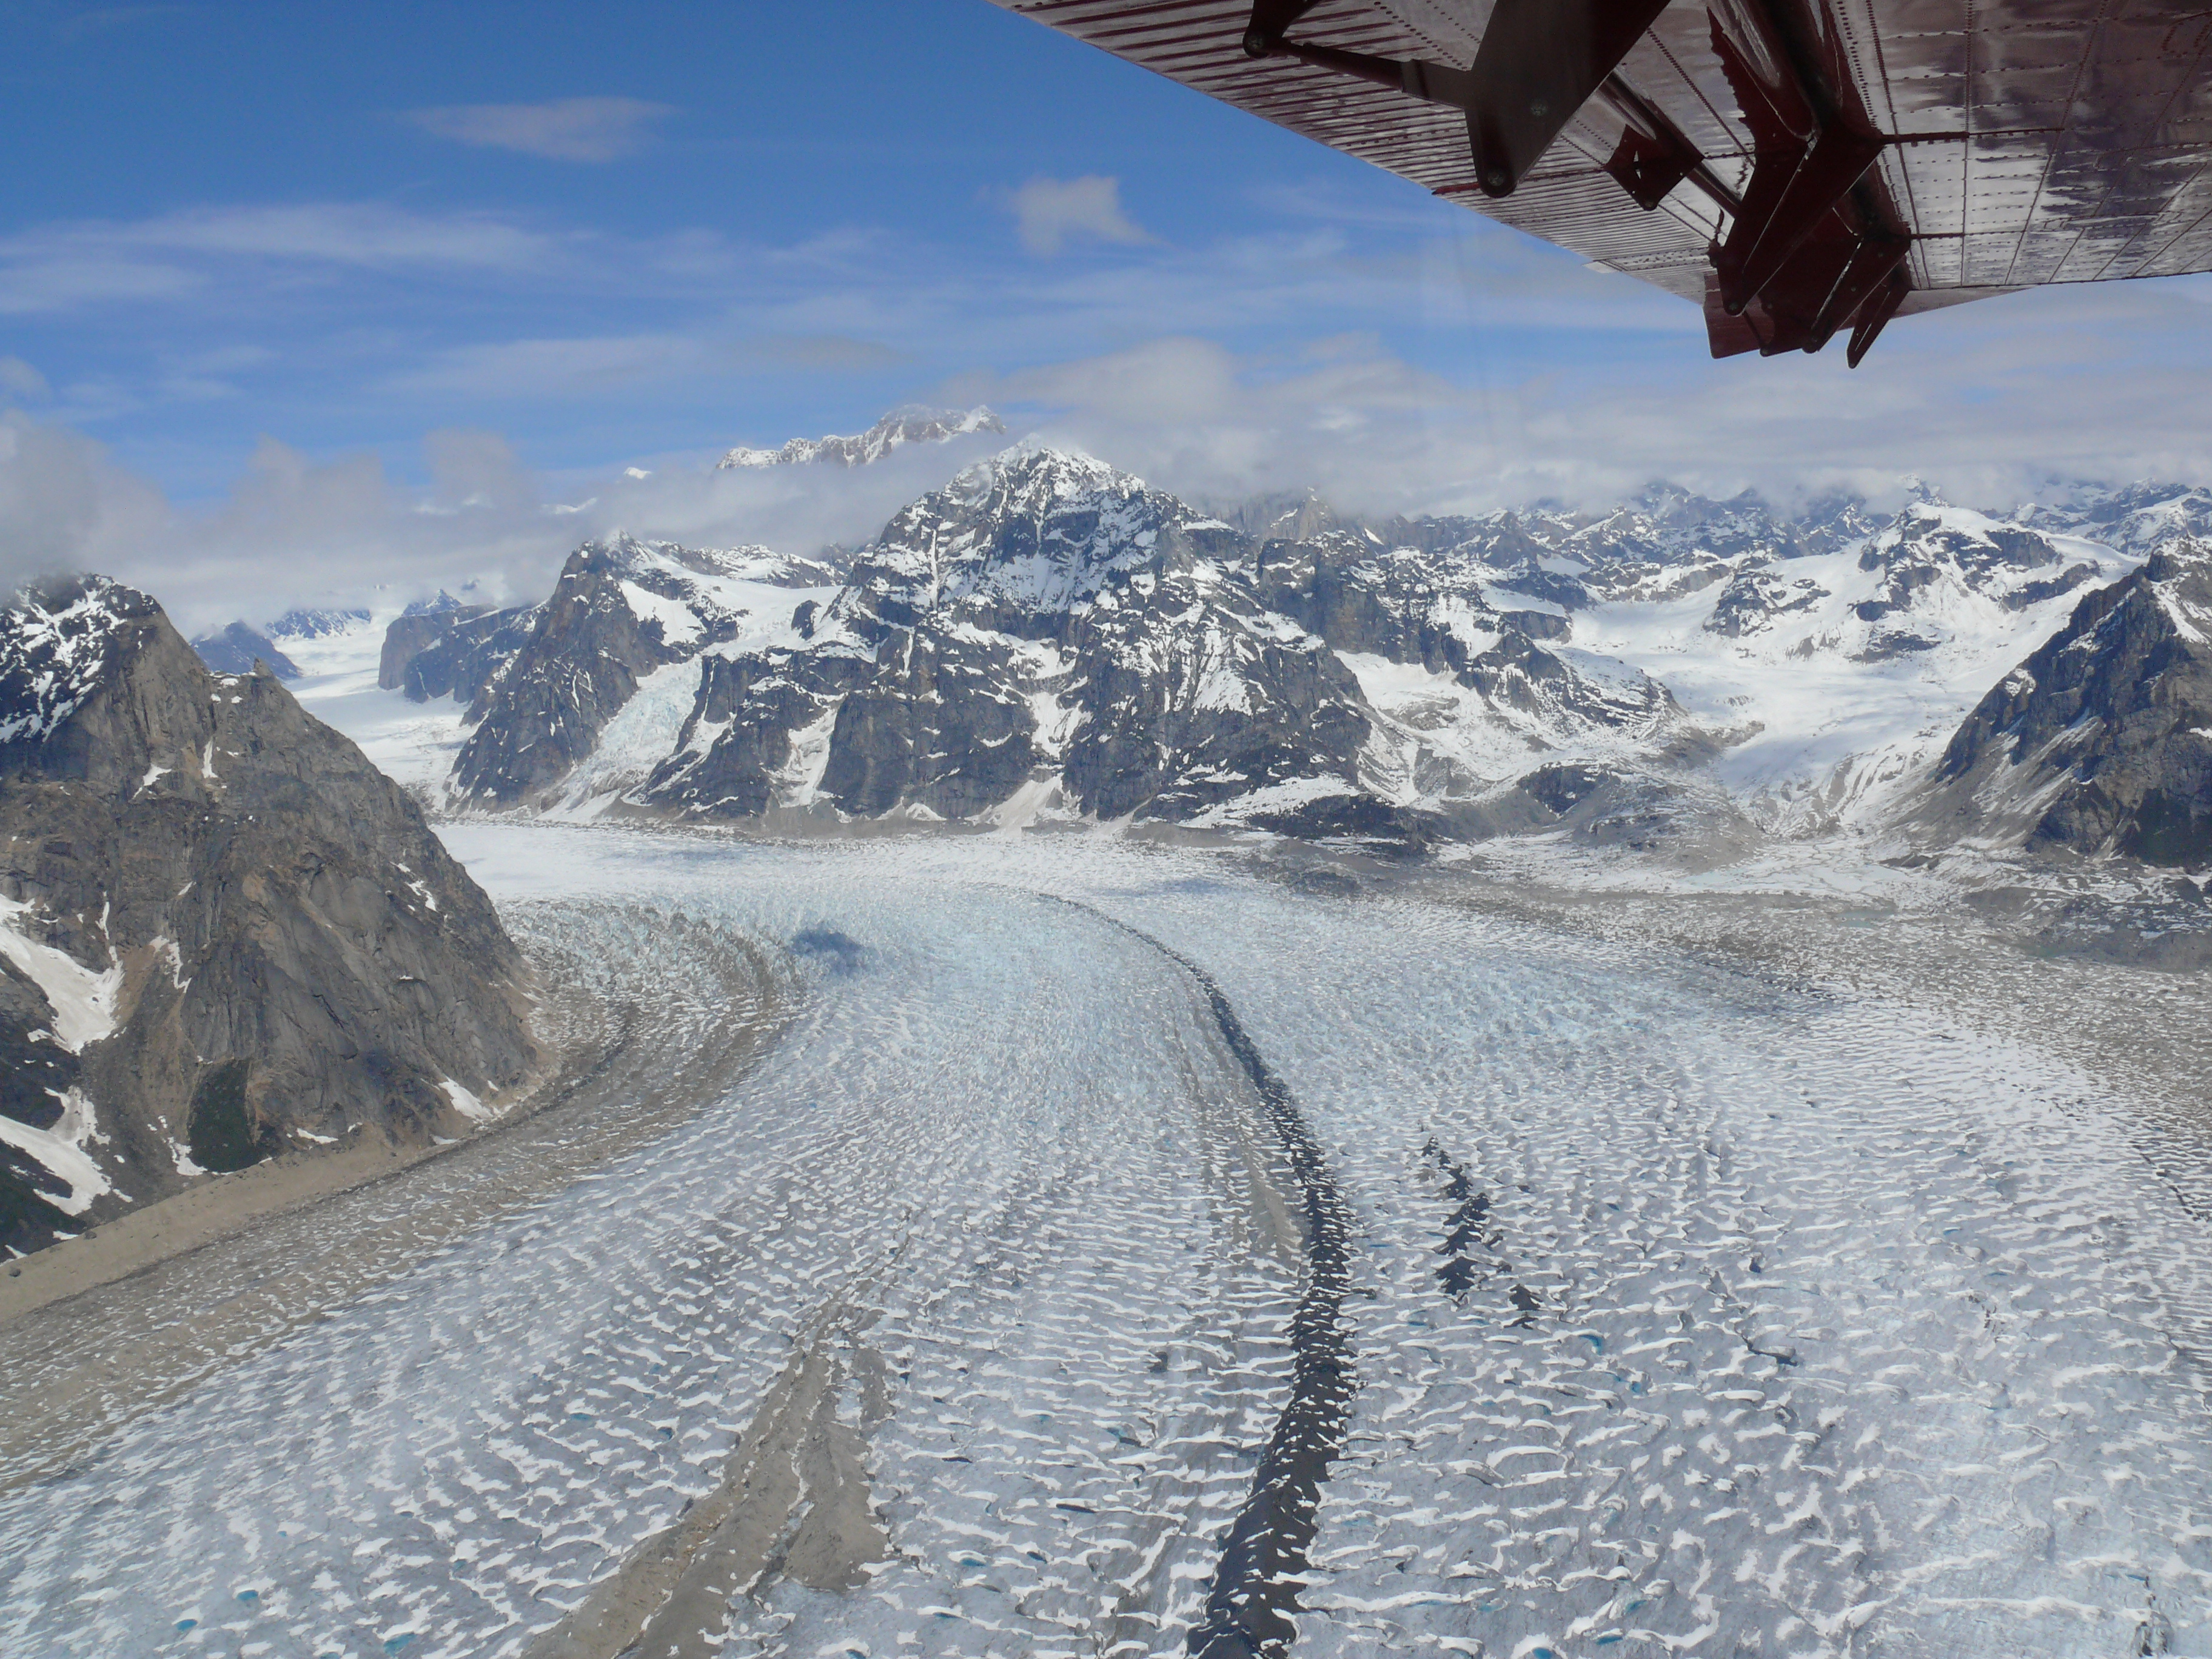 Looking at the Heart of a Glacier